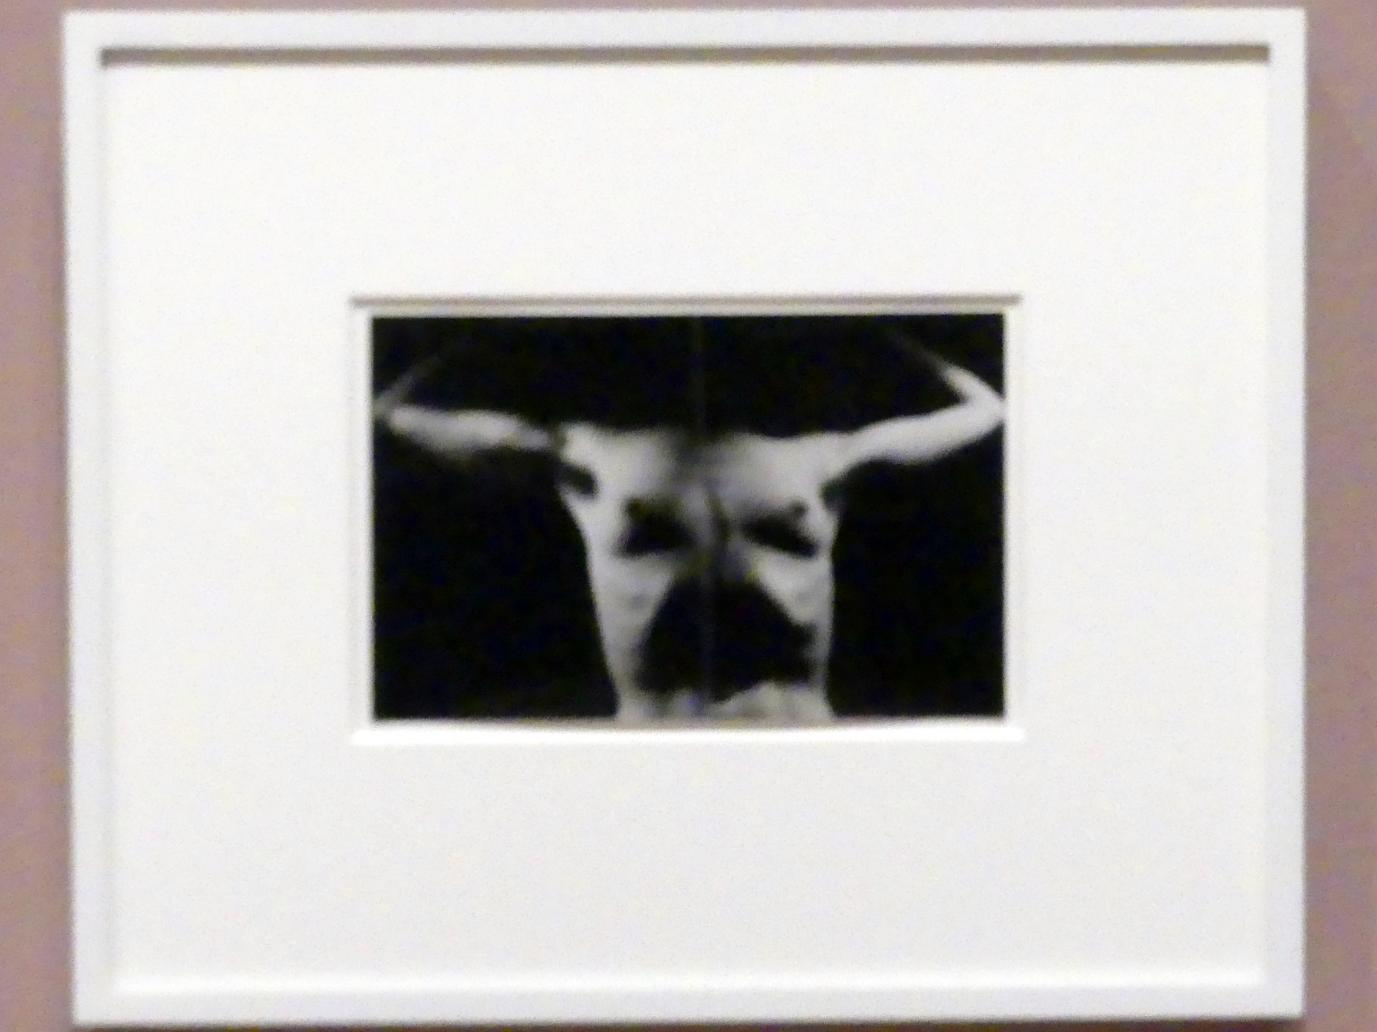 Man Ray: Minotaur, 1933